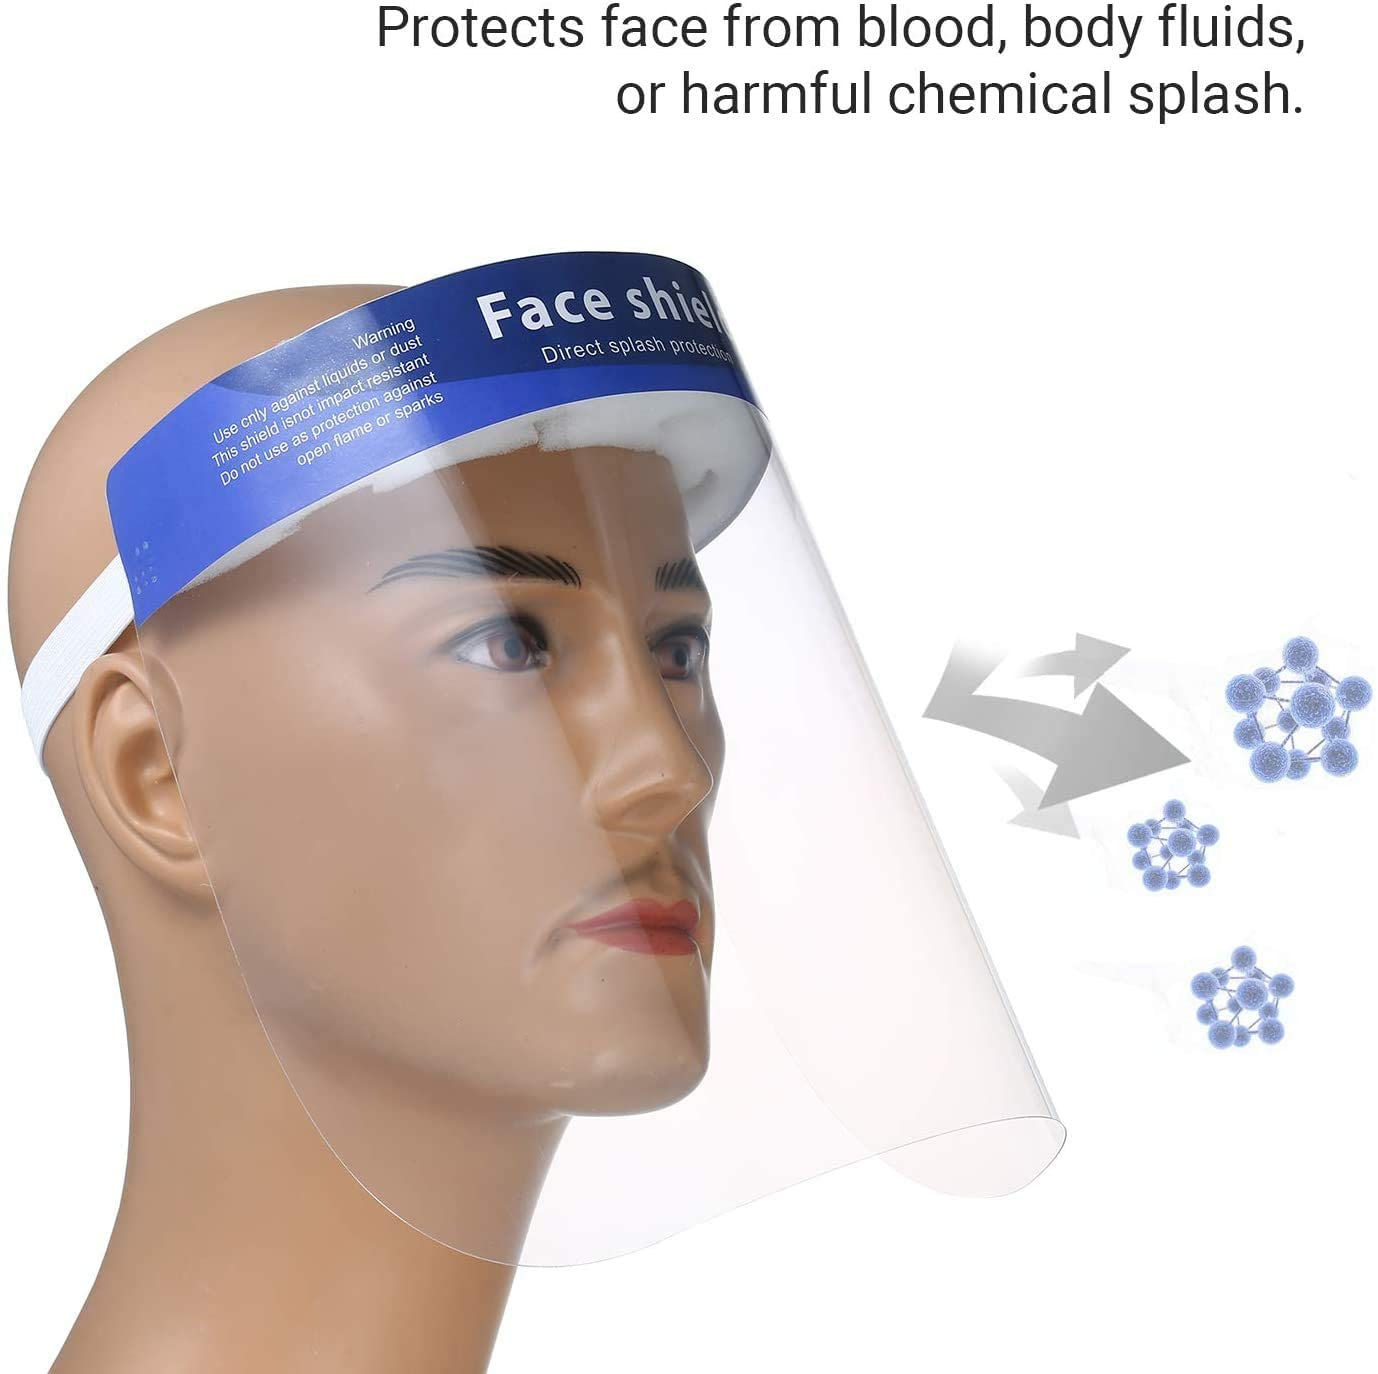 Safety Face Shield, Transparent Full Face Protective Masks Anti-Spitting/Anti-Dust/Anti-Flu Facial Cover for Women Men Adjustable Visor Eye & Head Protection